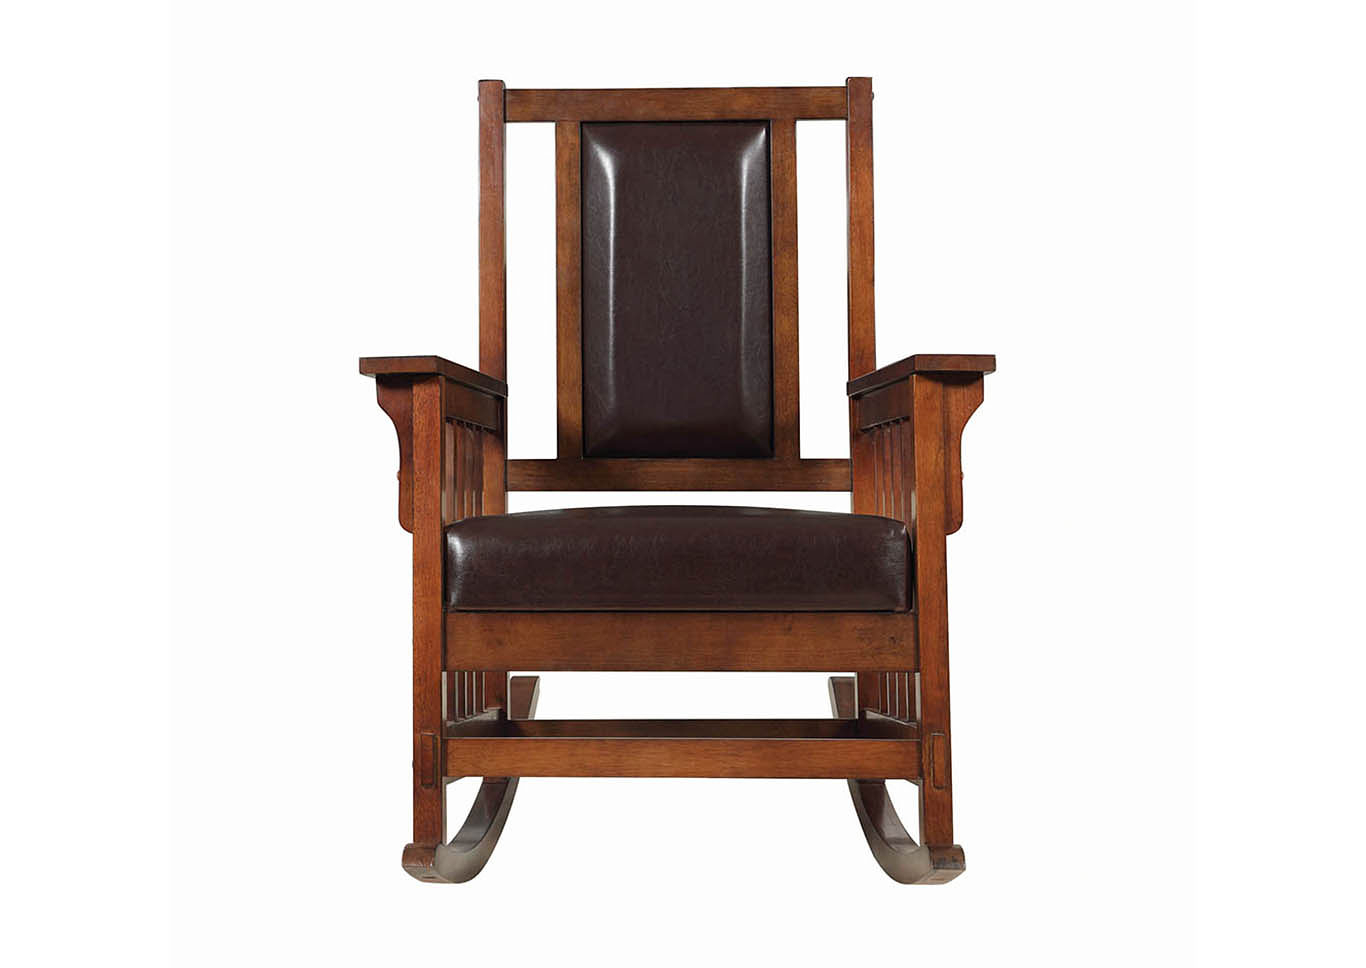 Harlem Furniture Tobacco Rocking Chair Intended For Tobacco Brown Wooden Rocking Chairs (#8 of 20)